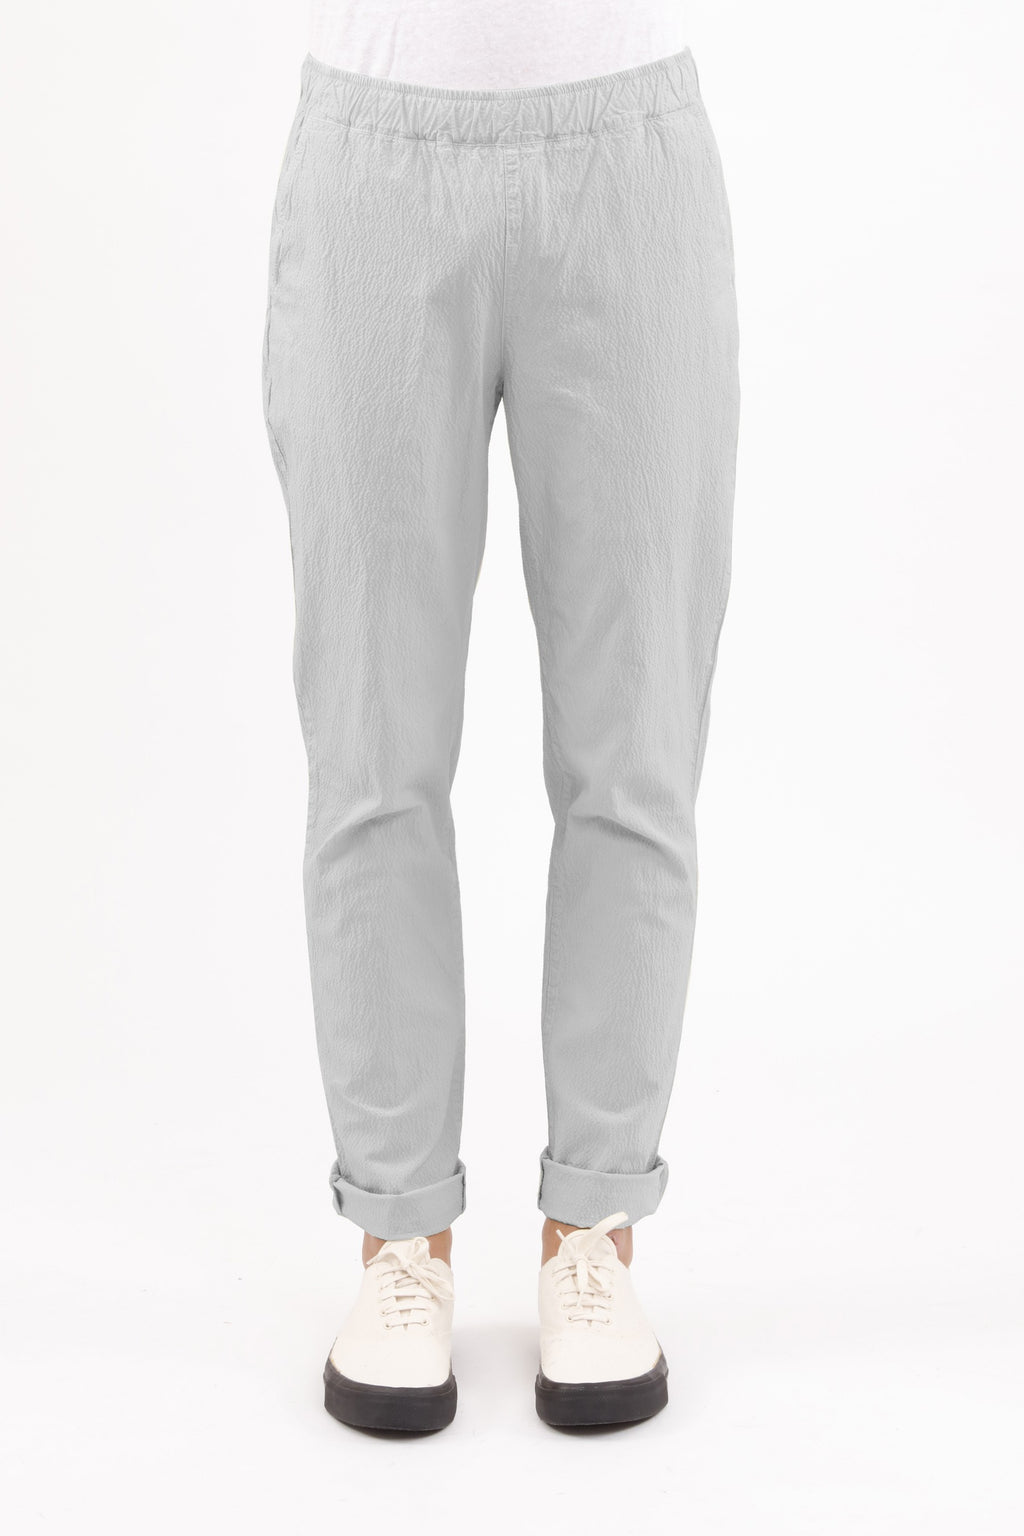 HOMECORE Drawcord Pants - LIGHT GREY